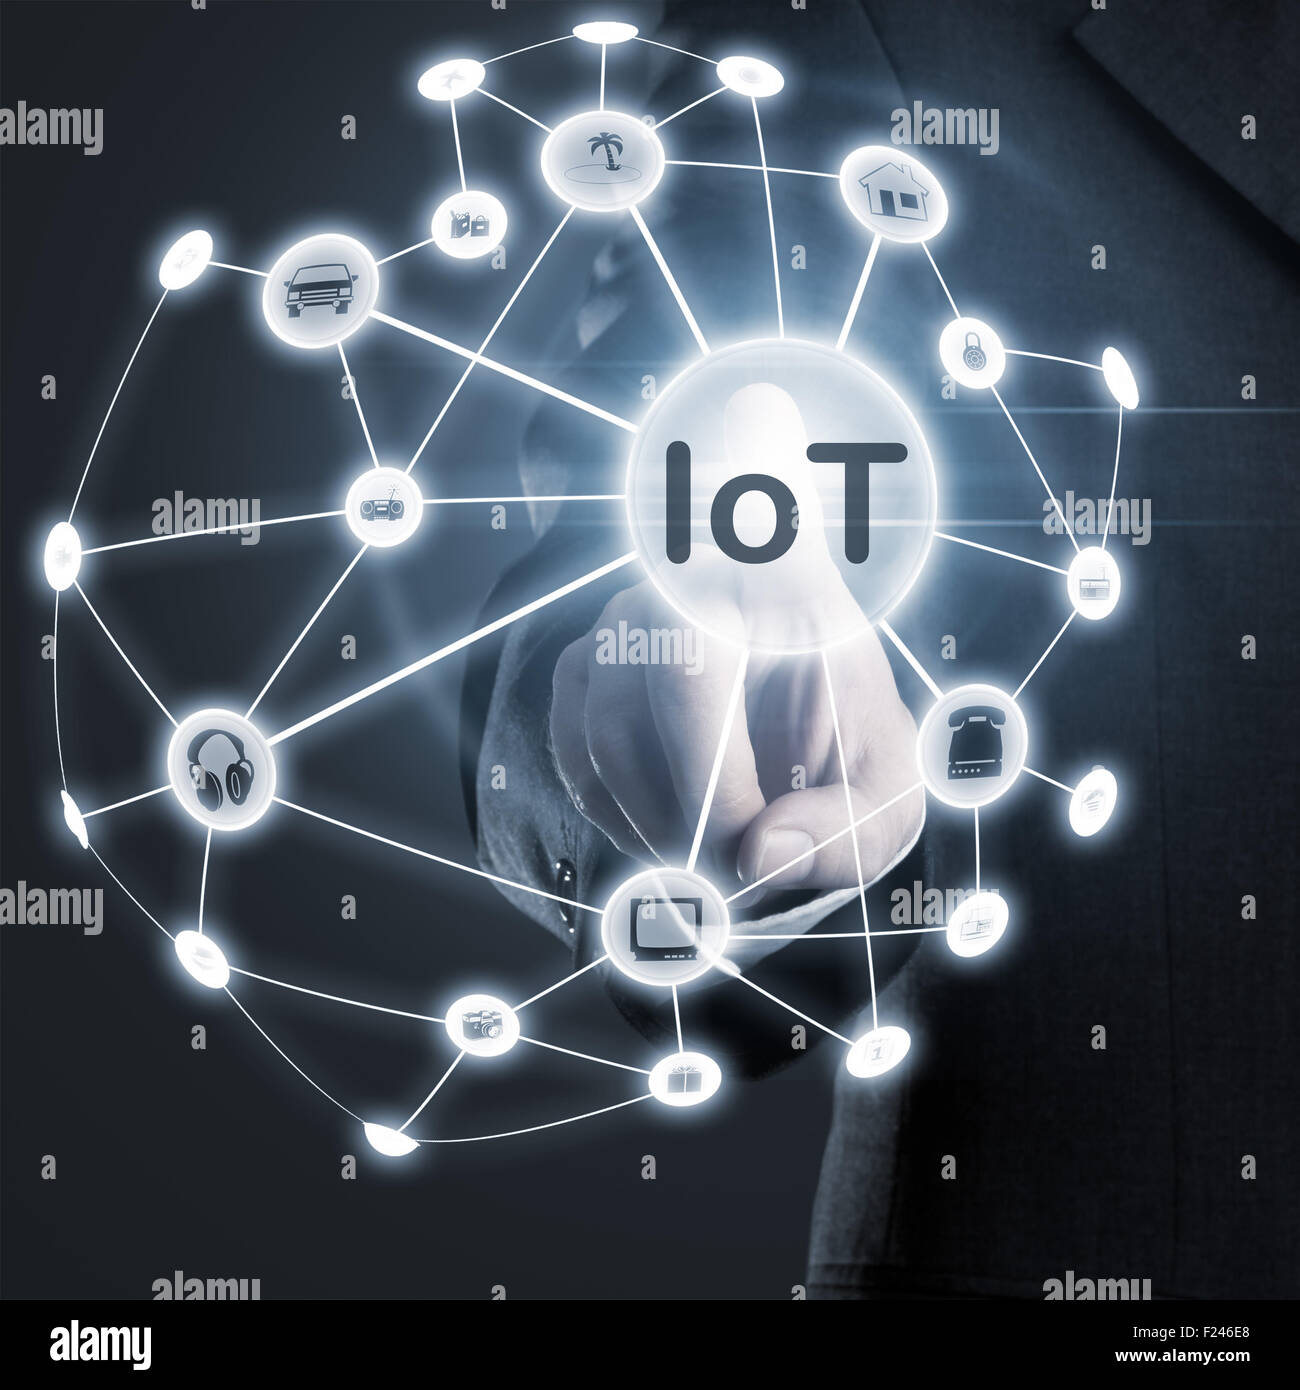 Man touching IoT (internet of things) network on display - Stock Image